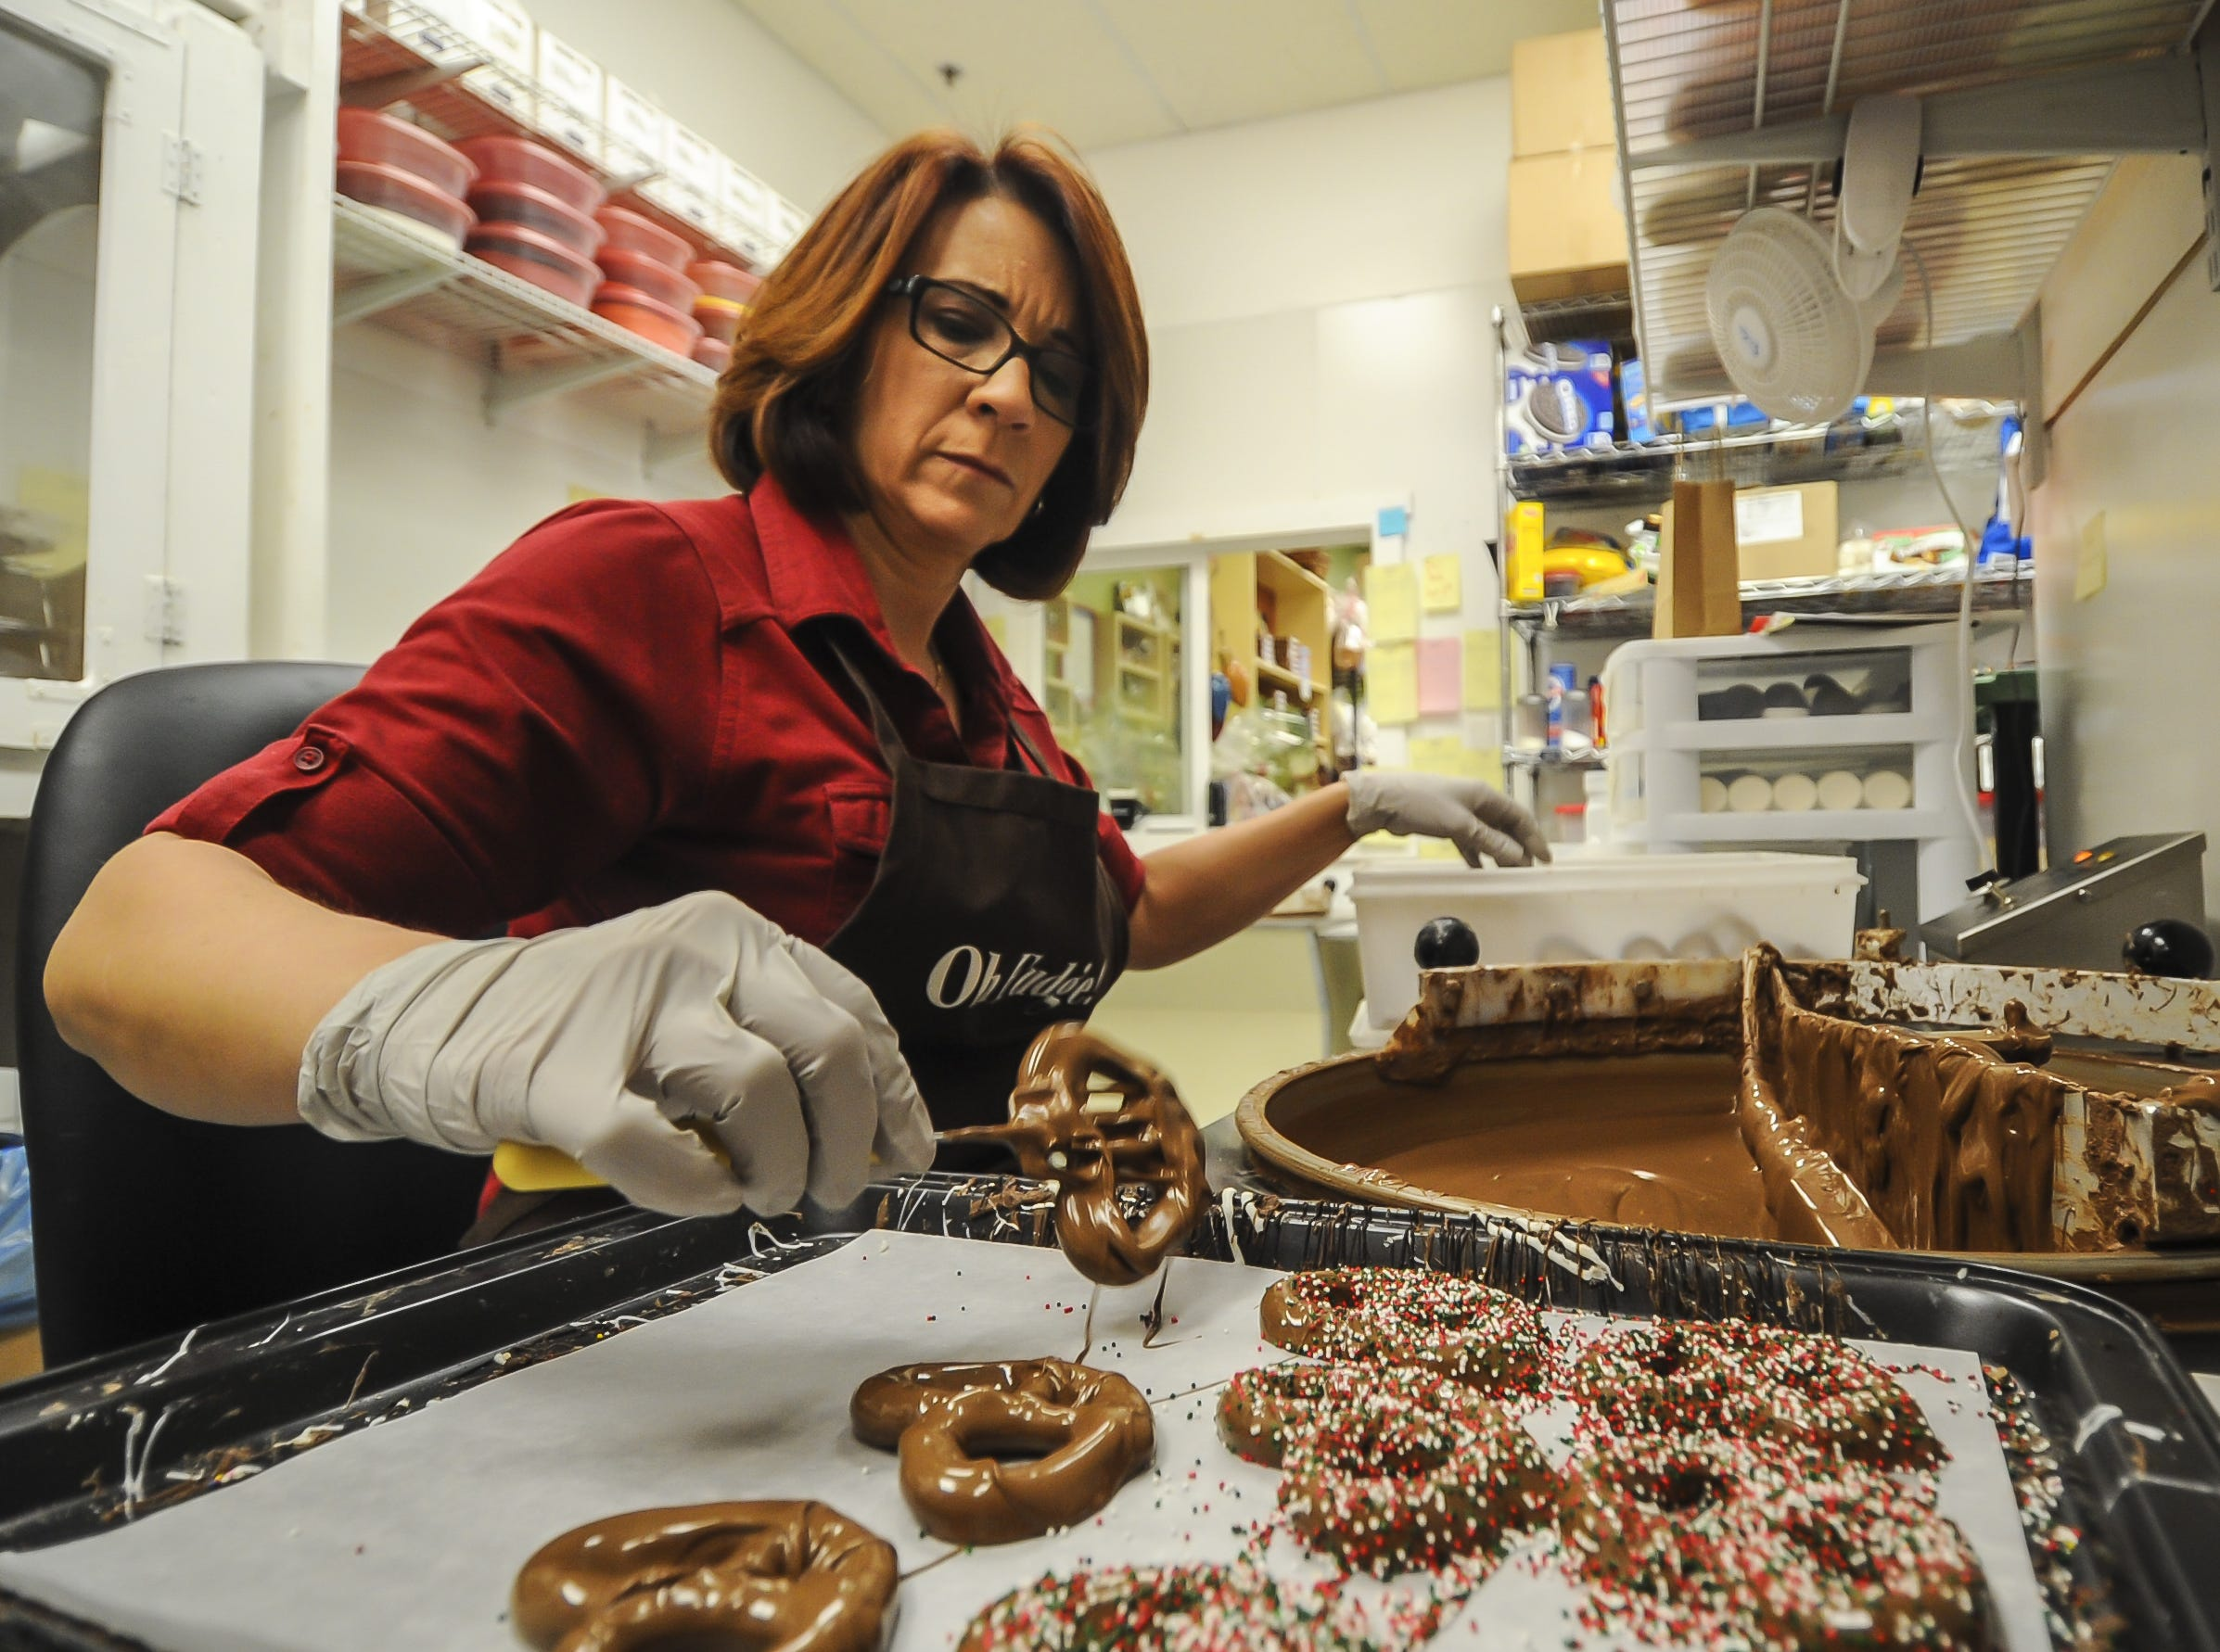 Susan Hordych, owner of Suzi's Sweet Shoppe, a Middletown family-owned business, places a pretzel dipped in chocolate from the dipping pot onto a tray. The family-owned business offers hand-dipped chocolates, gift baskets, party favors, and homemade fudge.